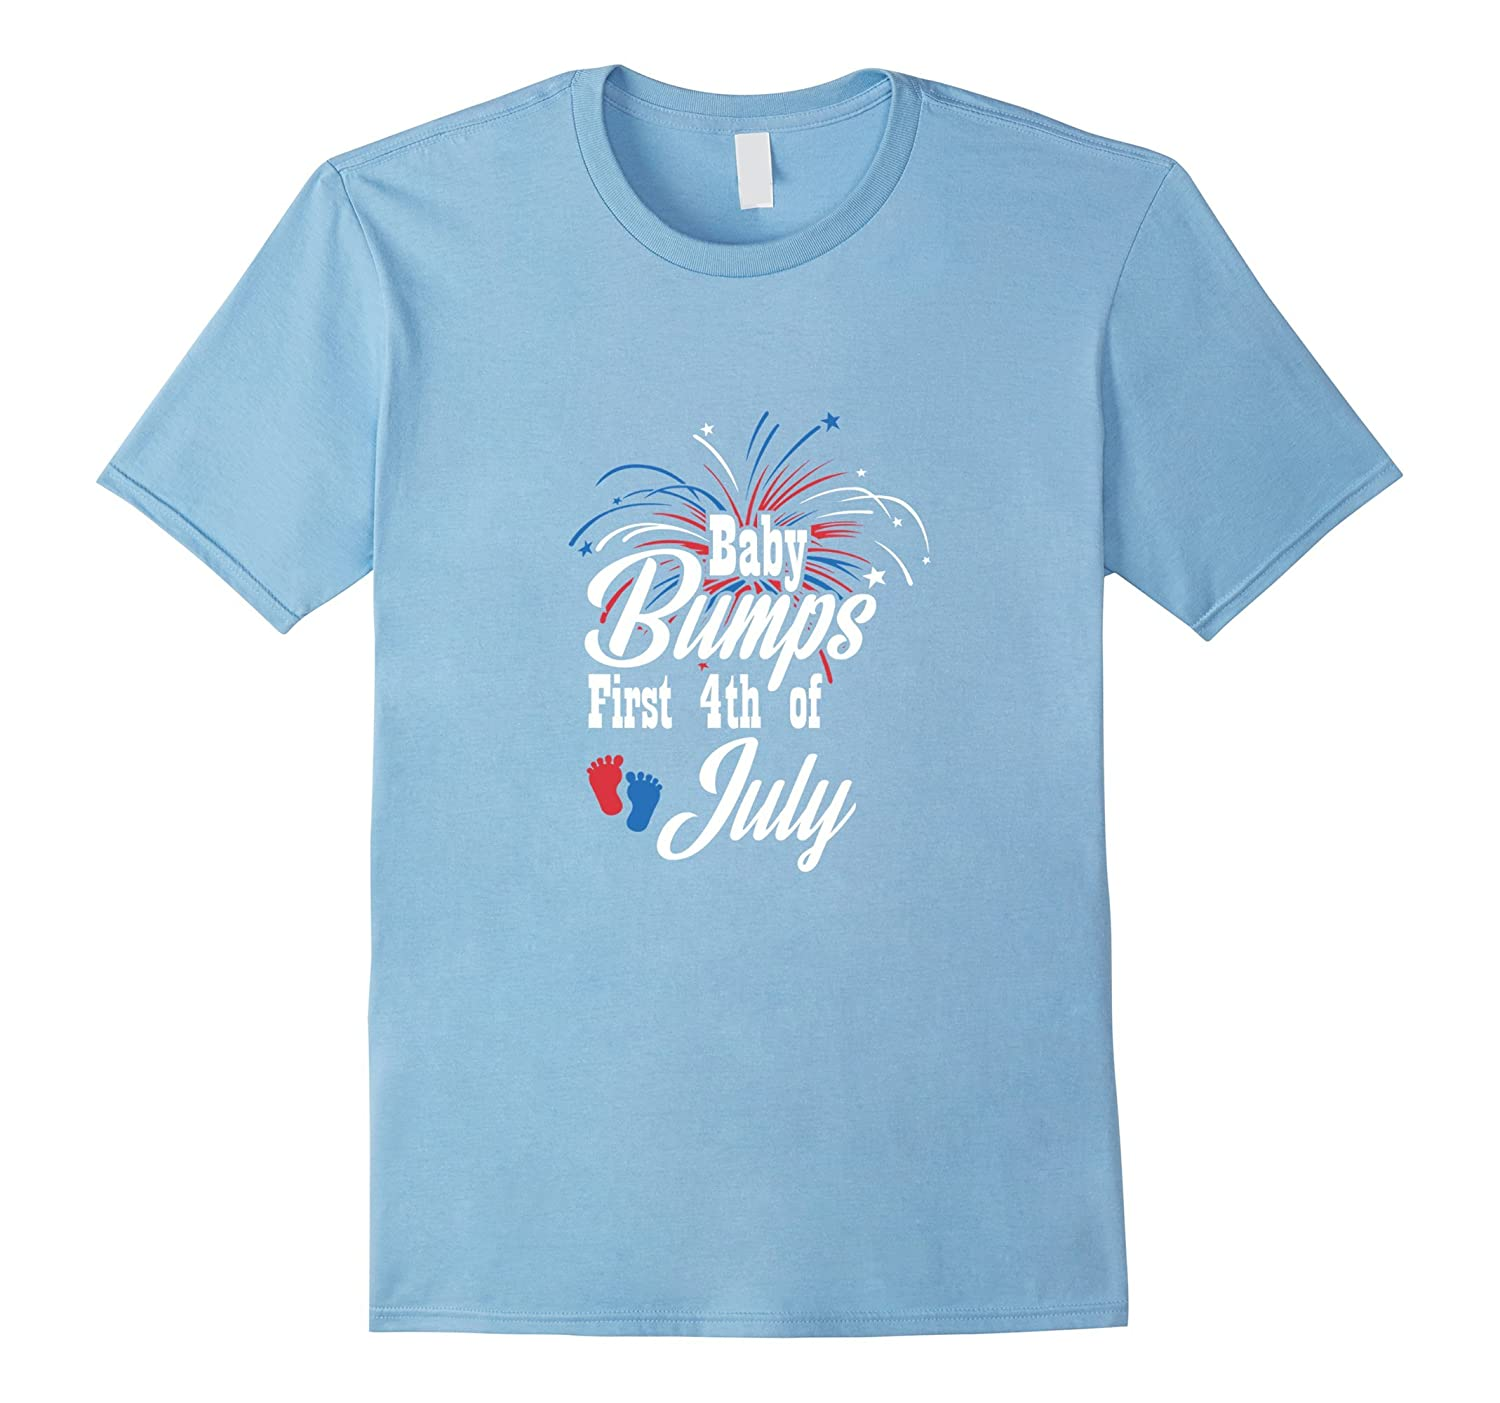 Baby Bumps First 4th Of July Funny Baby Shower T Shirt Gifts